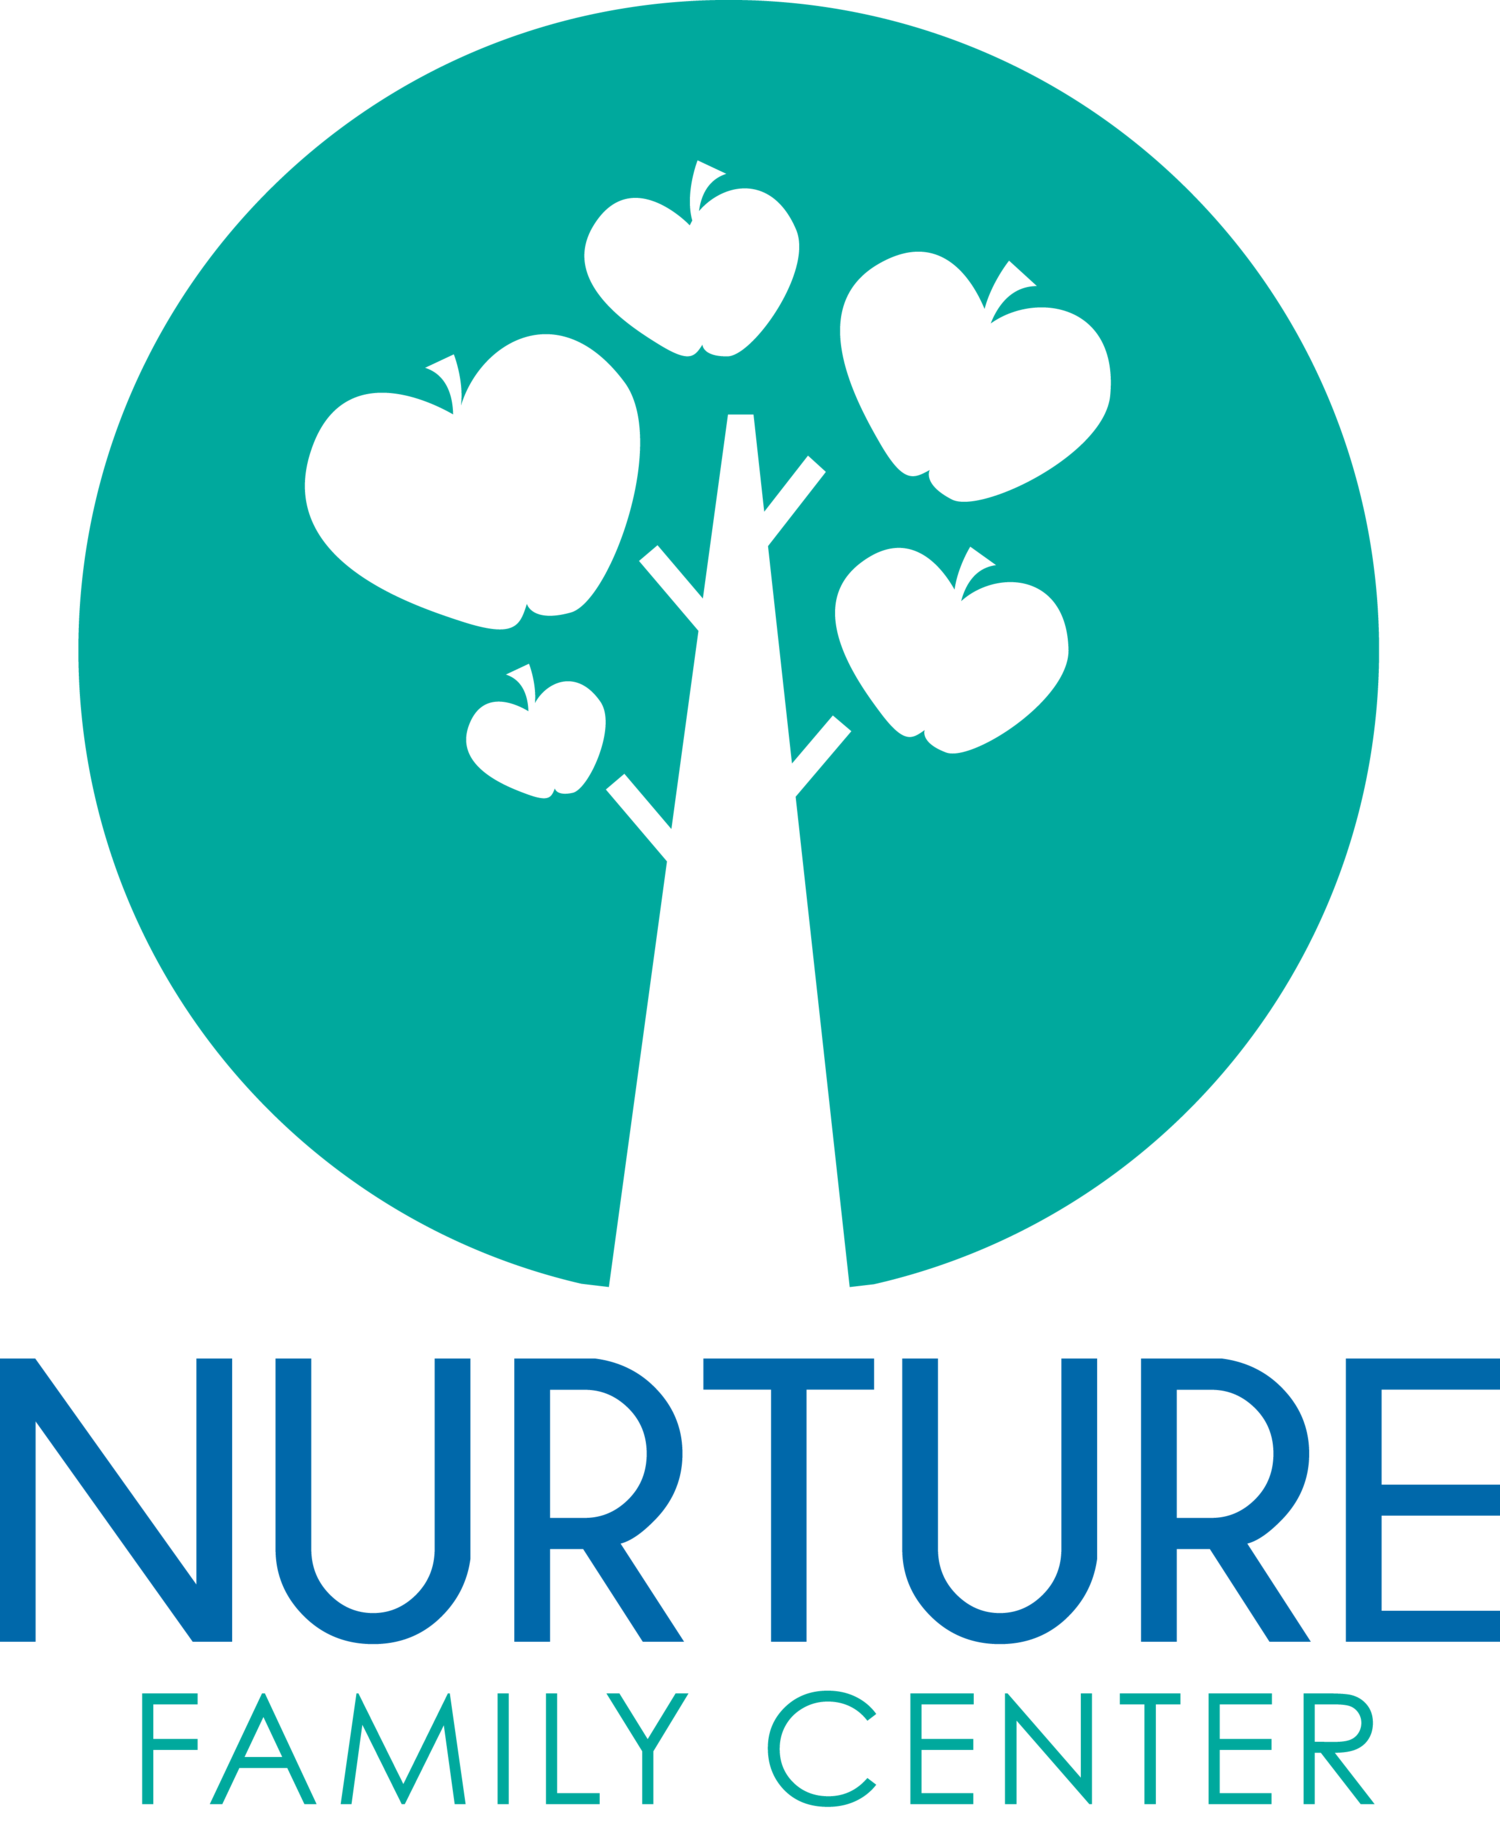 NURTURE Family Center